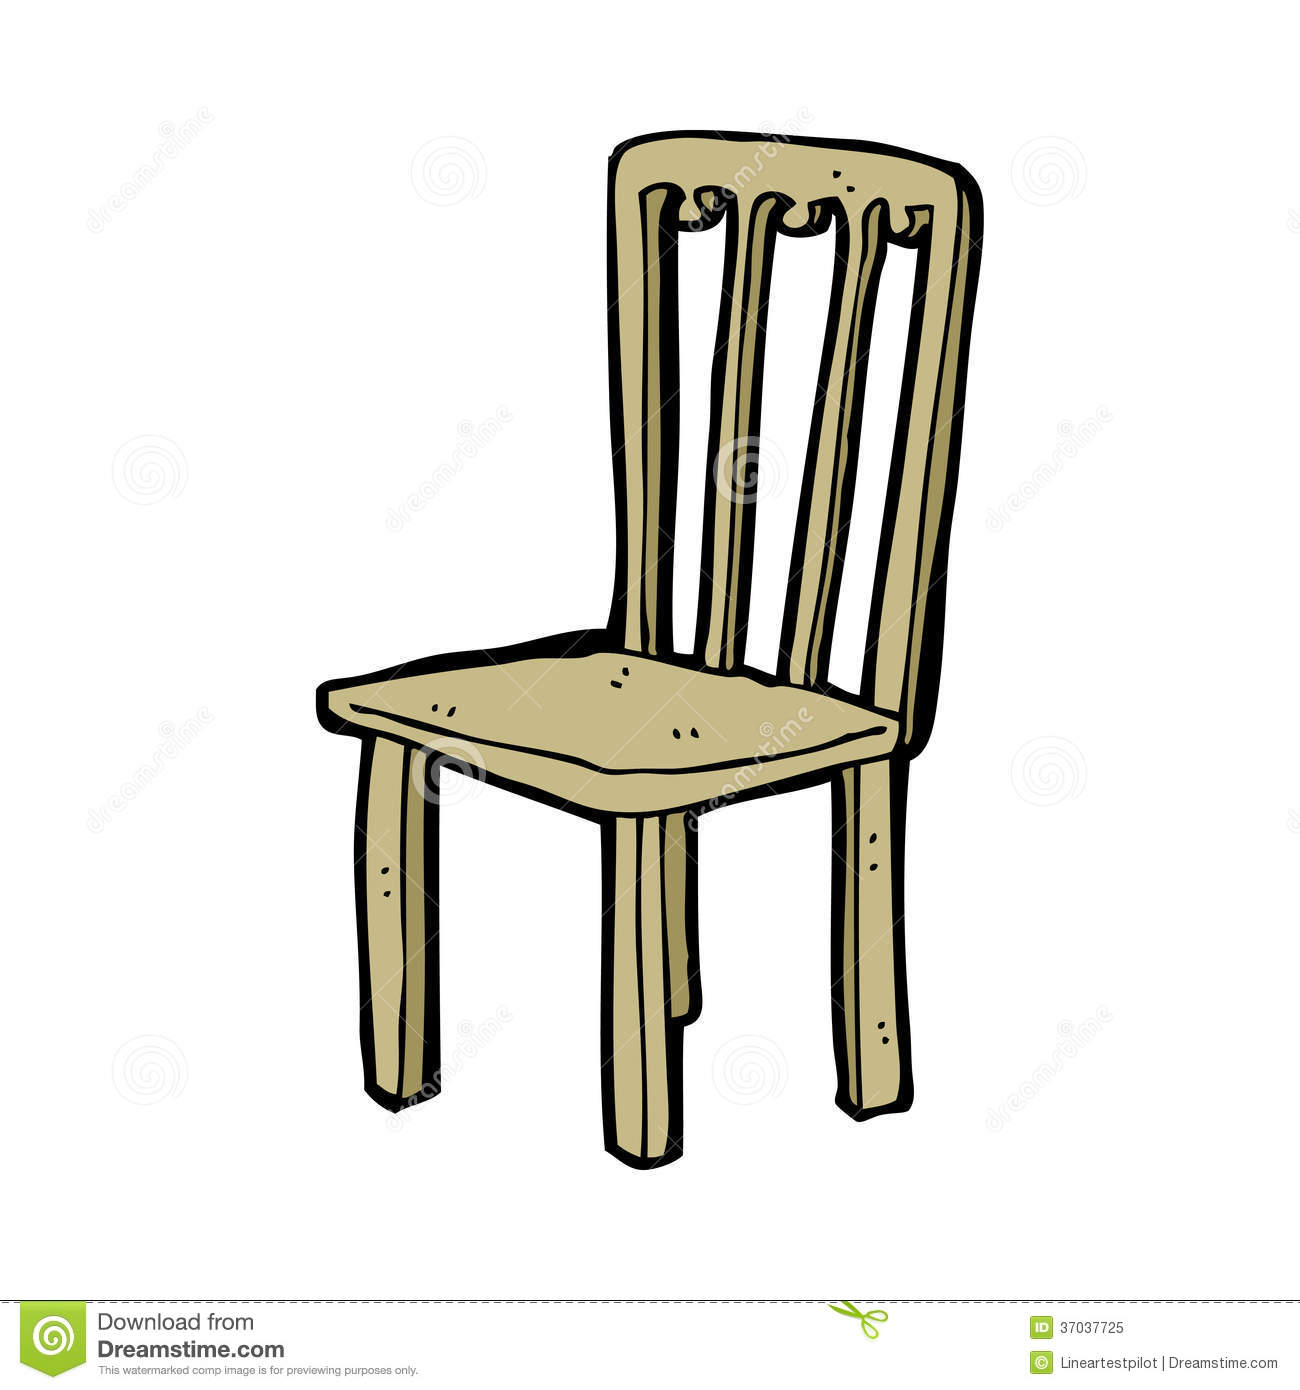 Cartoon Old Chair Royalty Free Stock Photo.